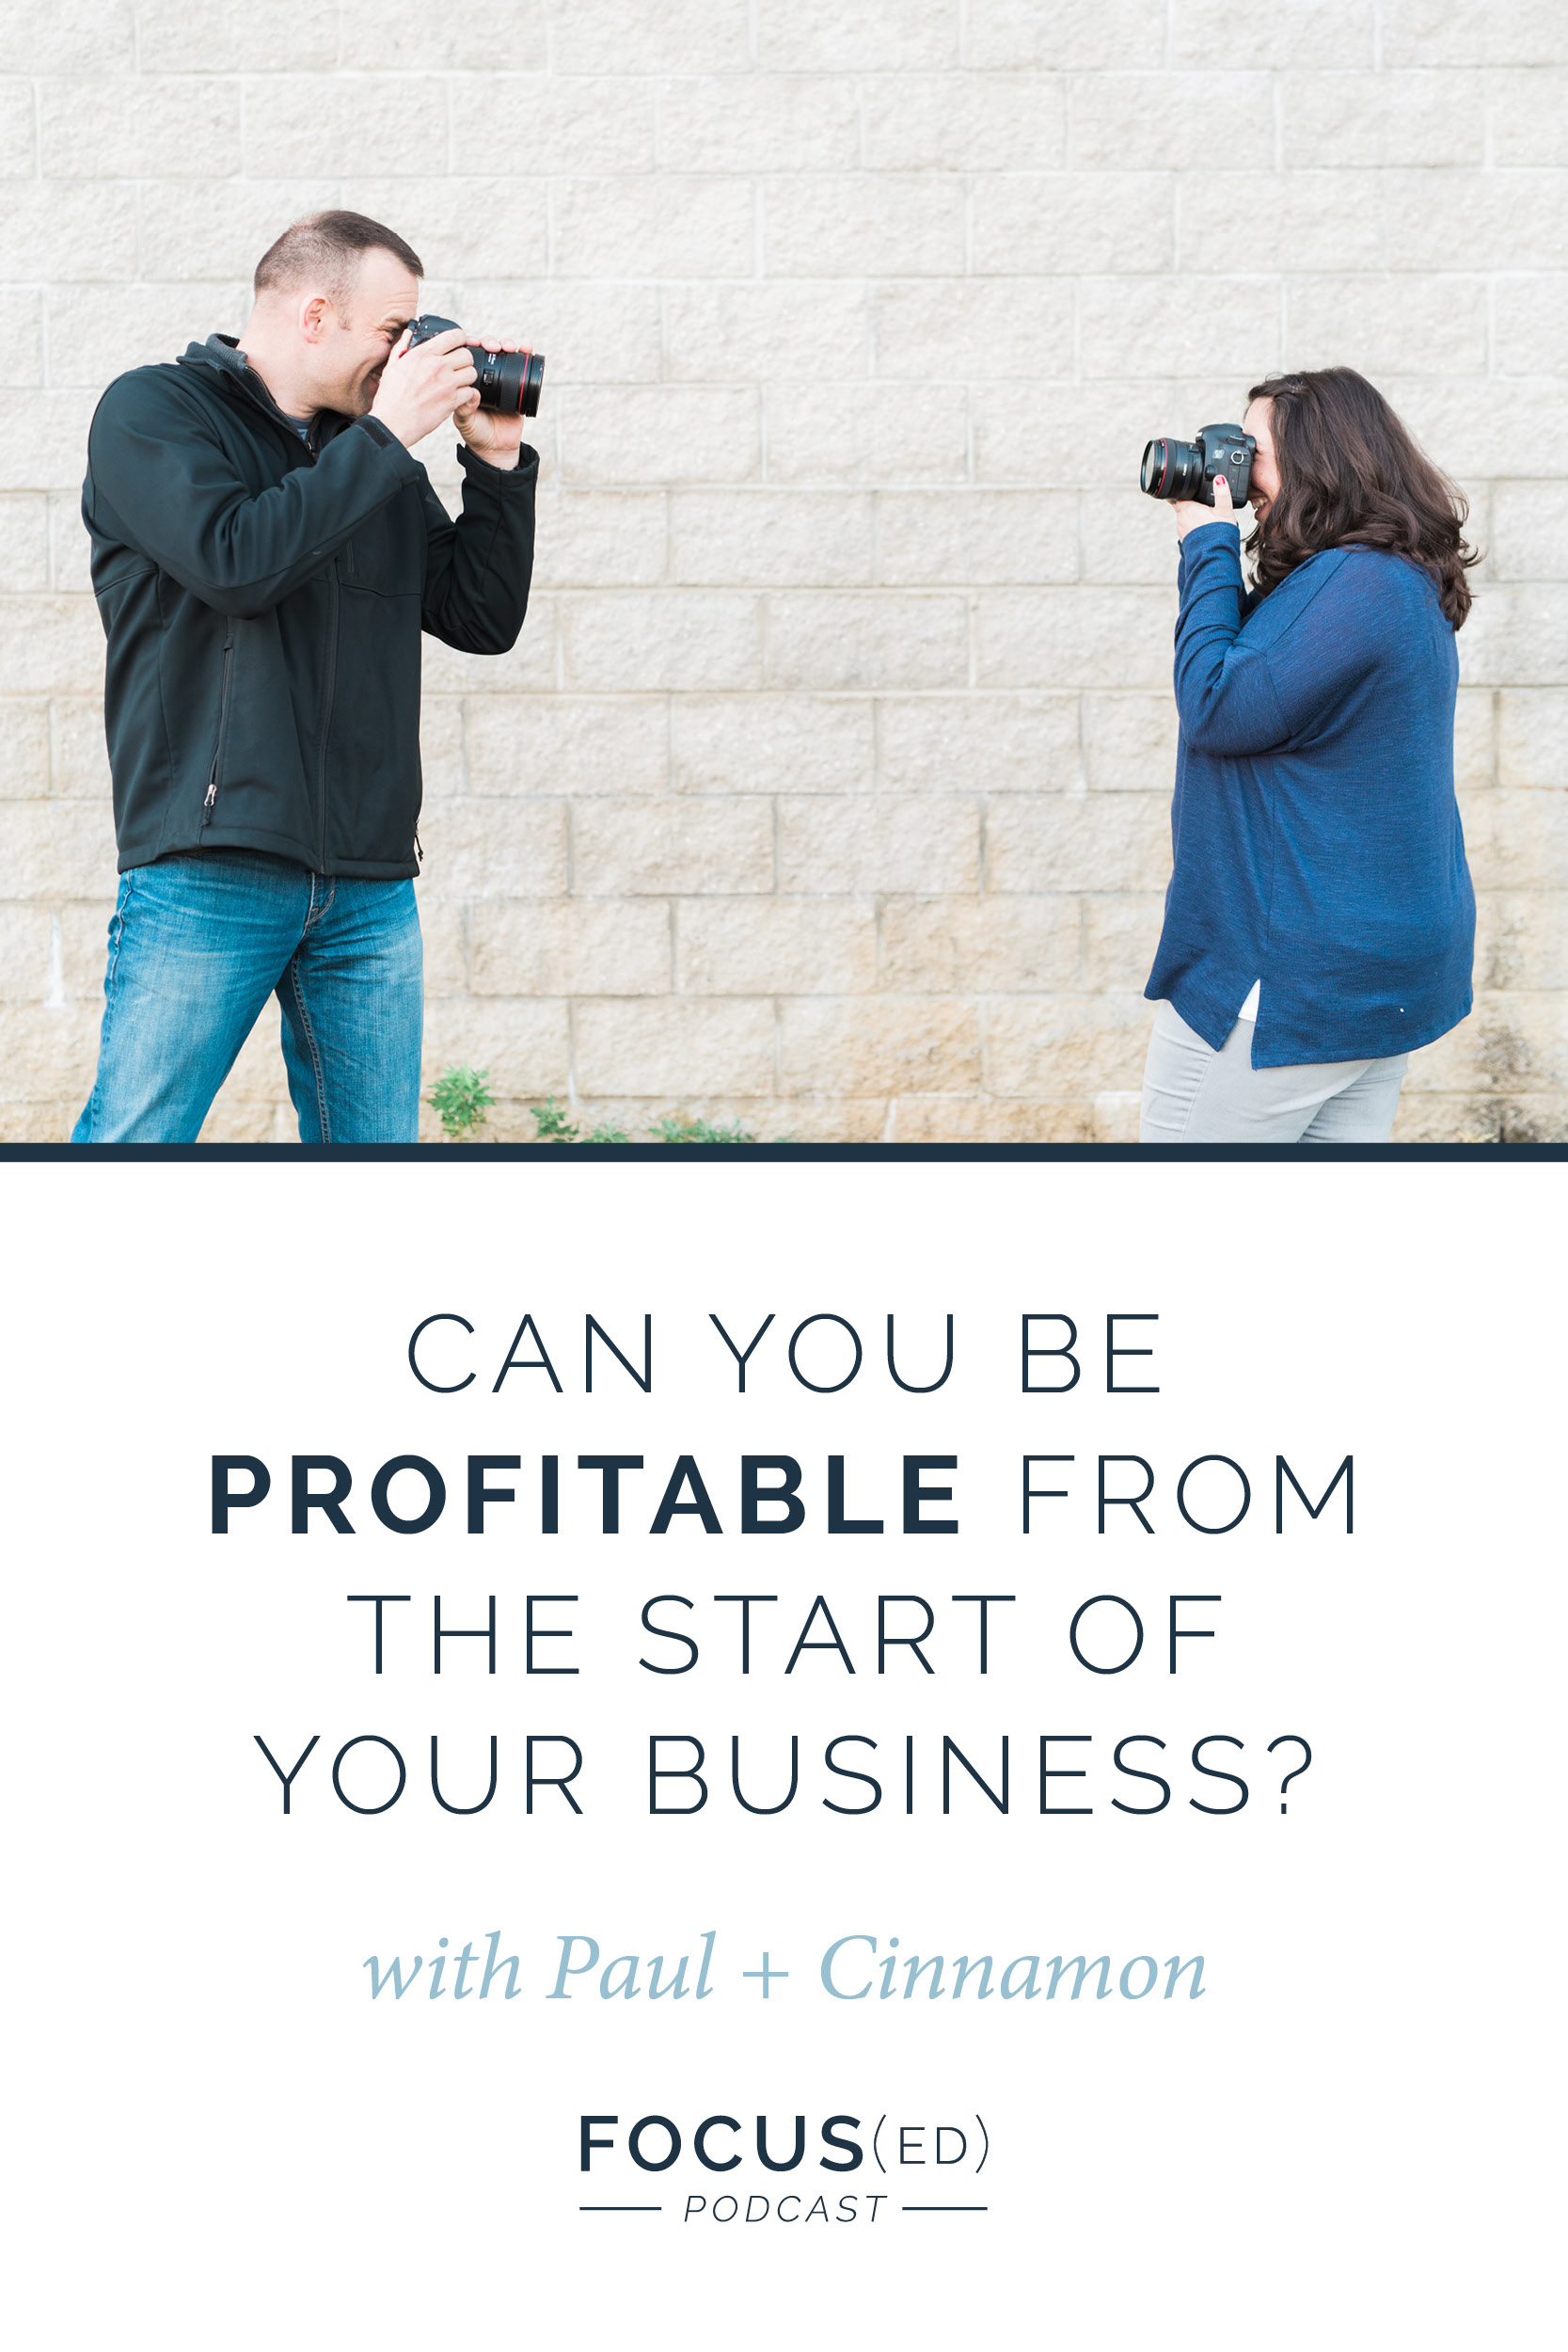 Setting your business up to be profitable  |  Focus(ed) Podcast